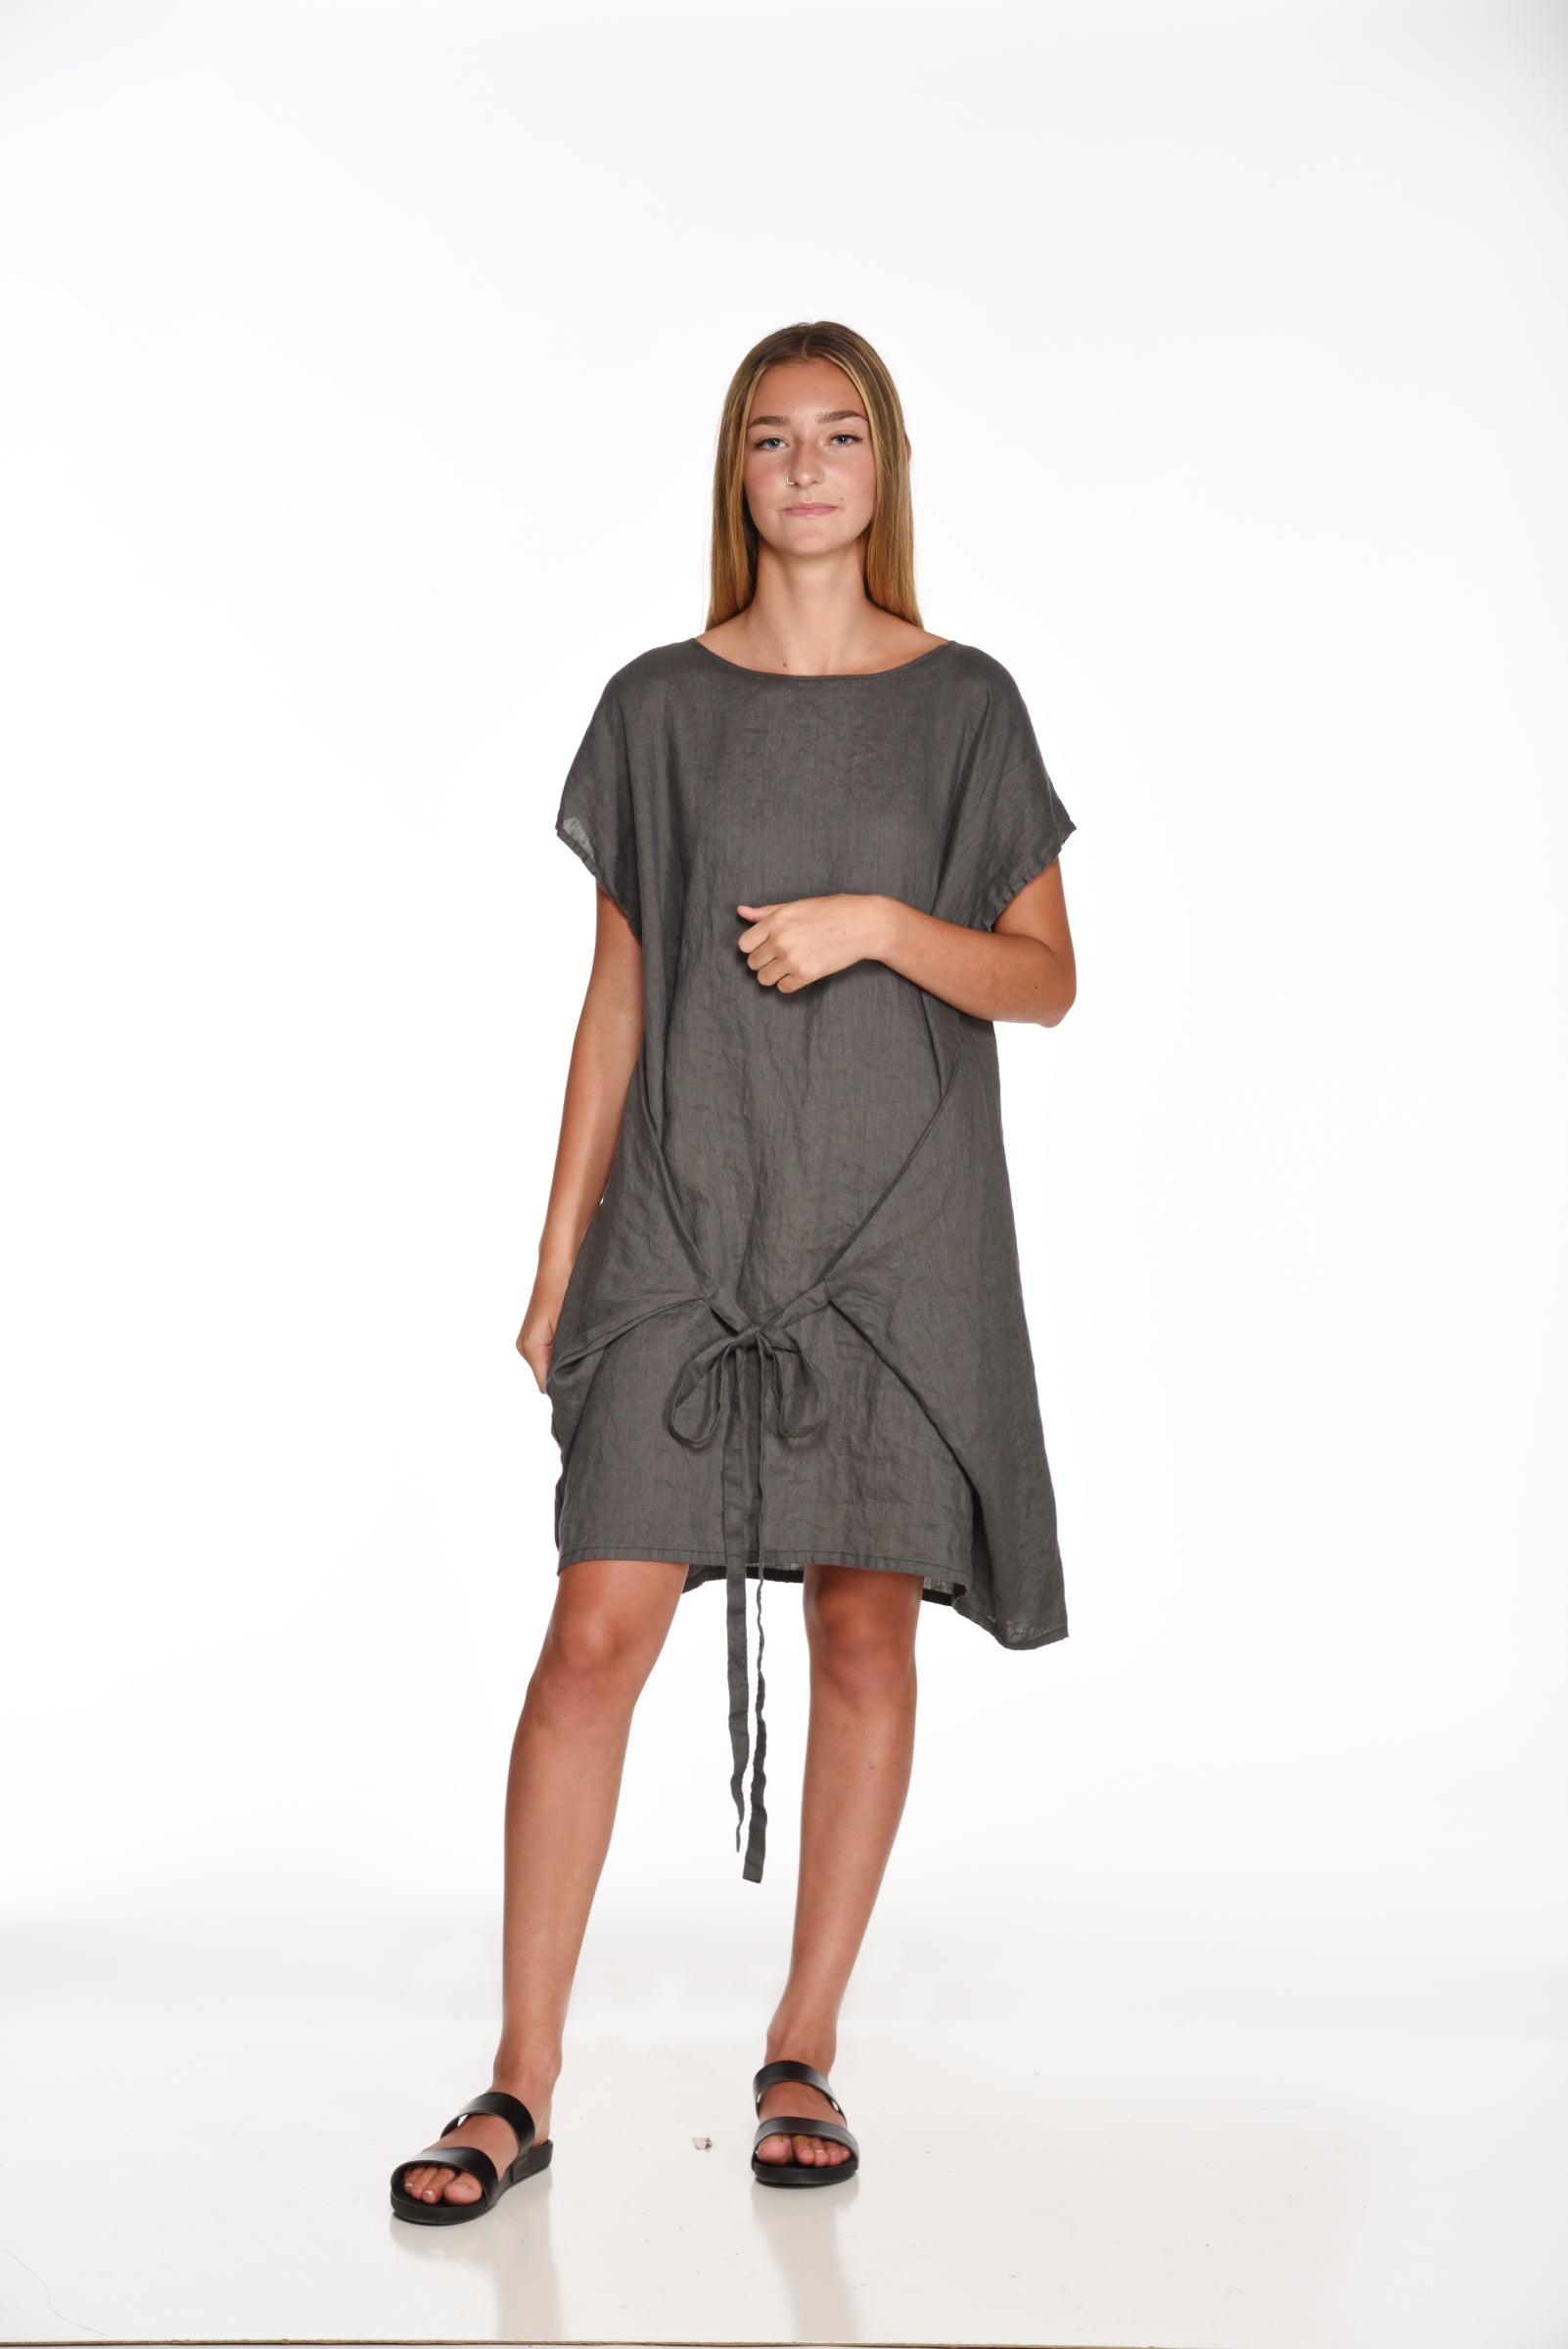 The Kelly Dress